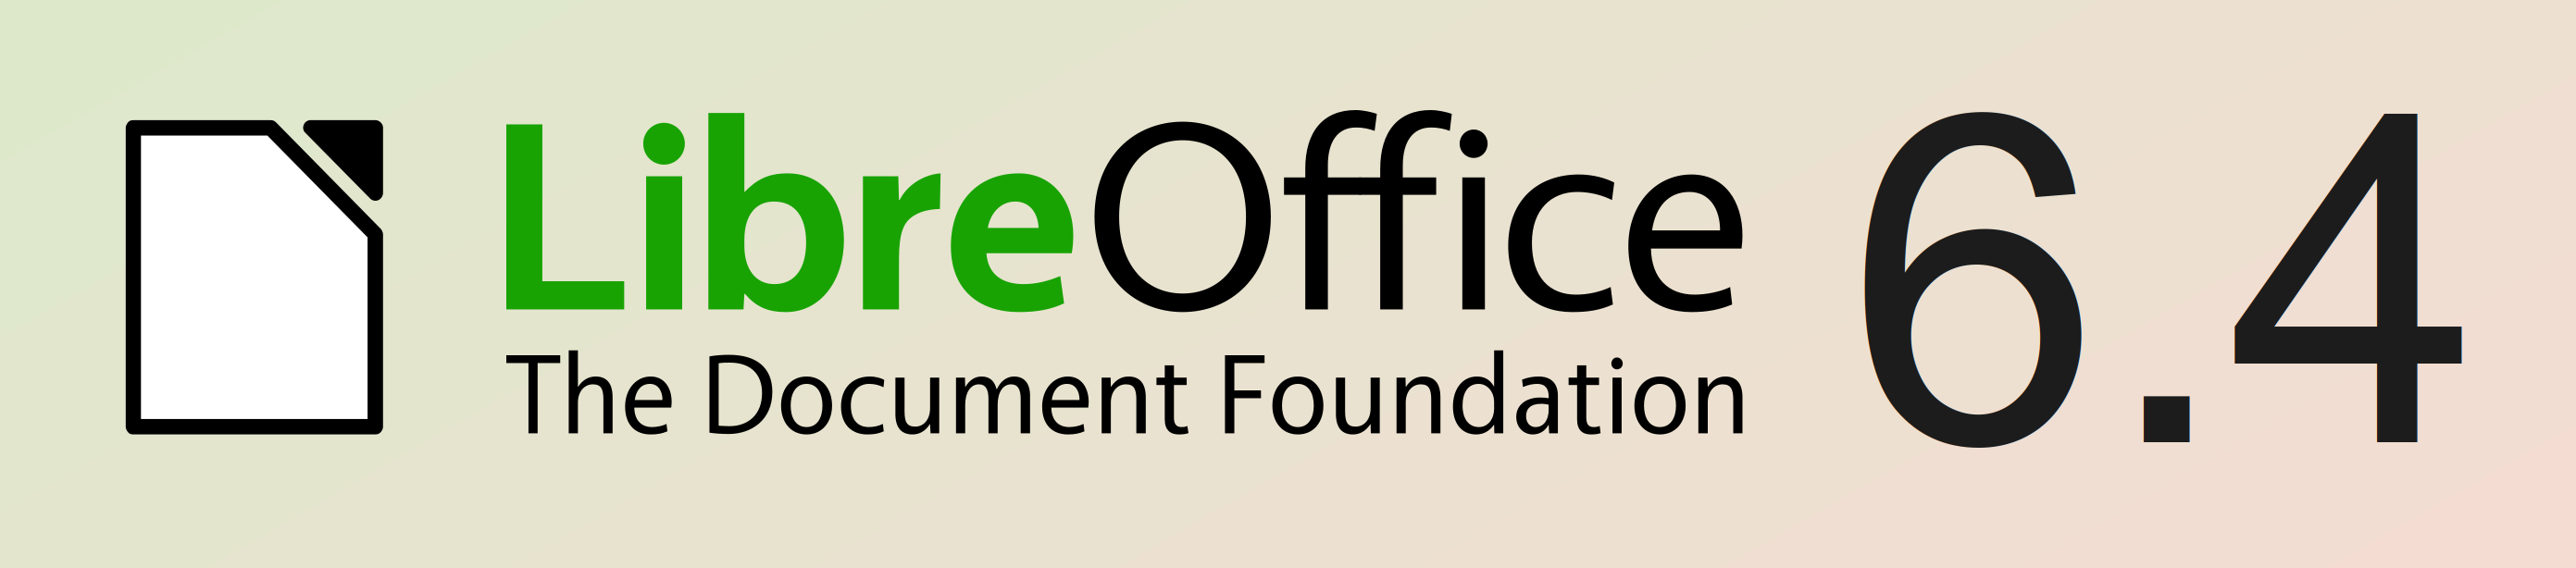 LibreOffice 6.4 banner